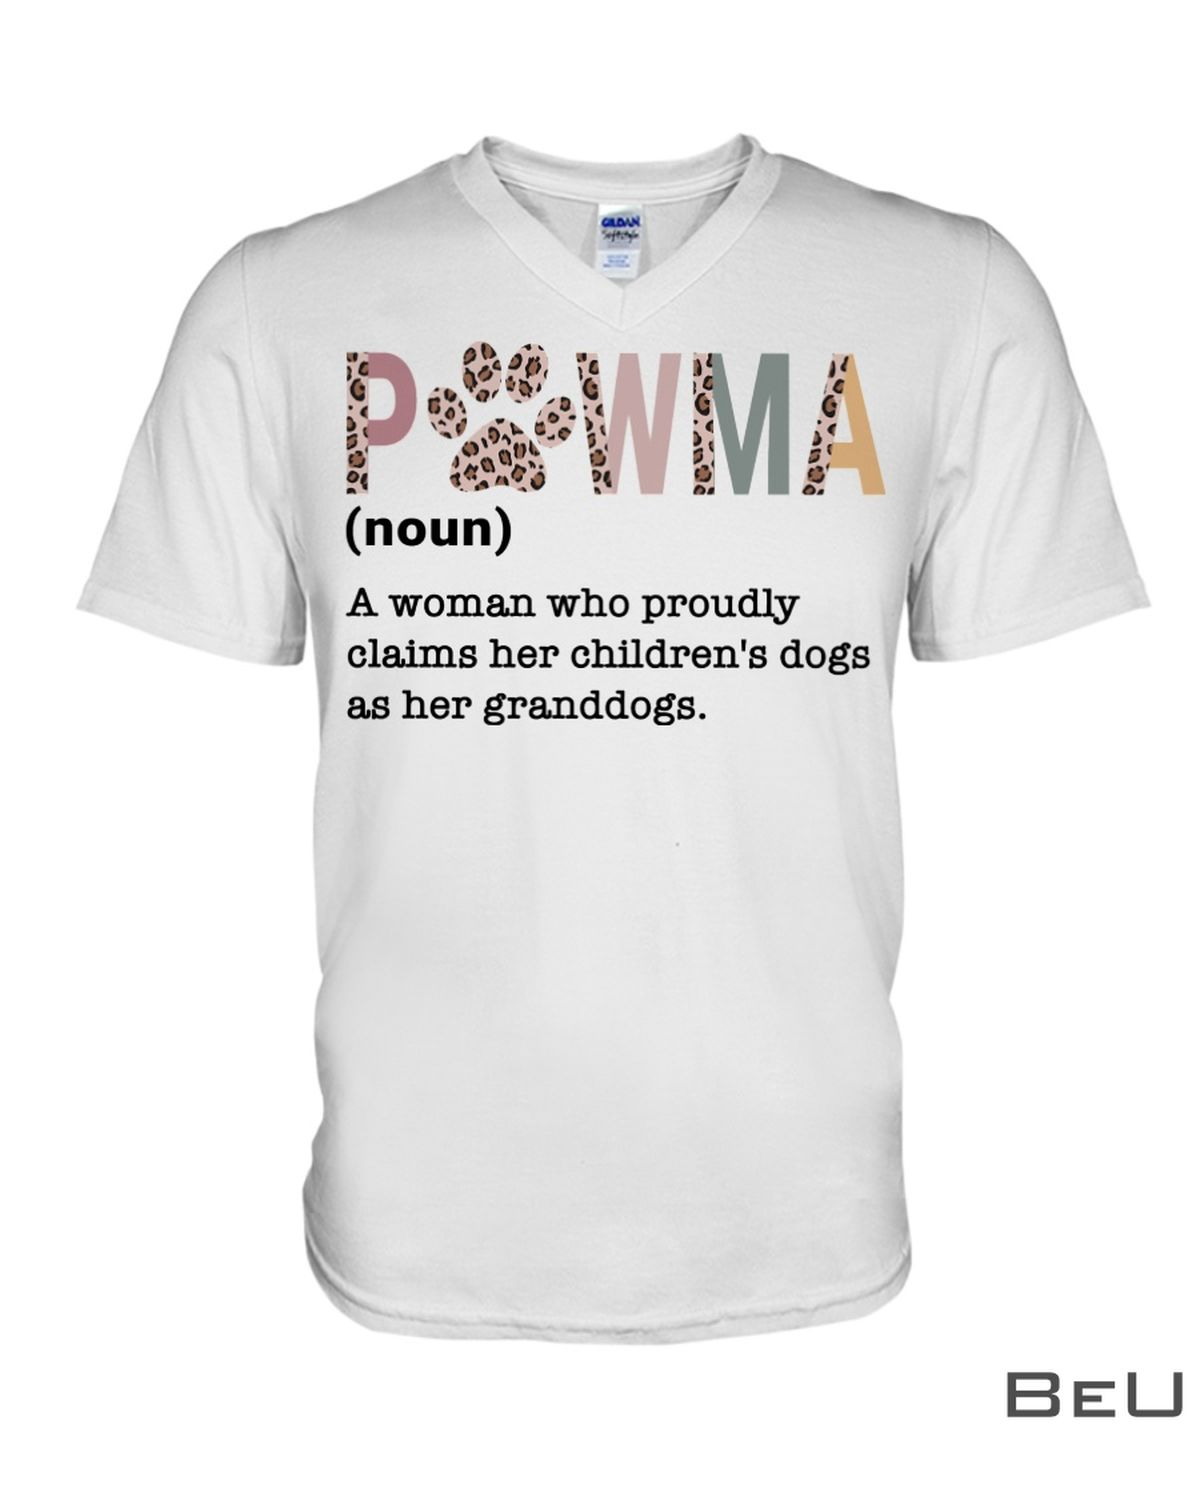 Pawma Definition A Woman Who Proudly Claims Her Children's Dogs Shirtx